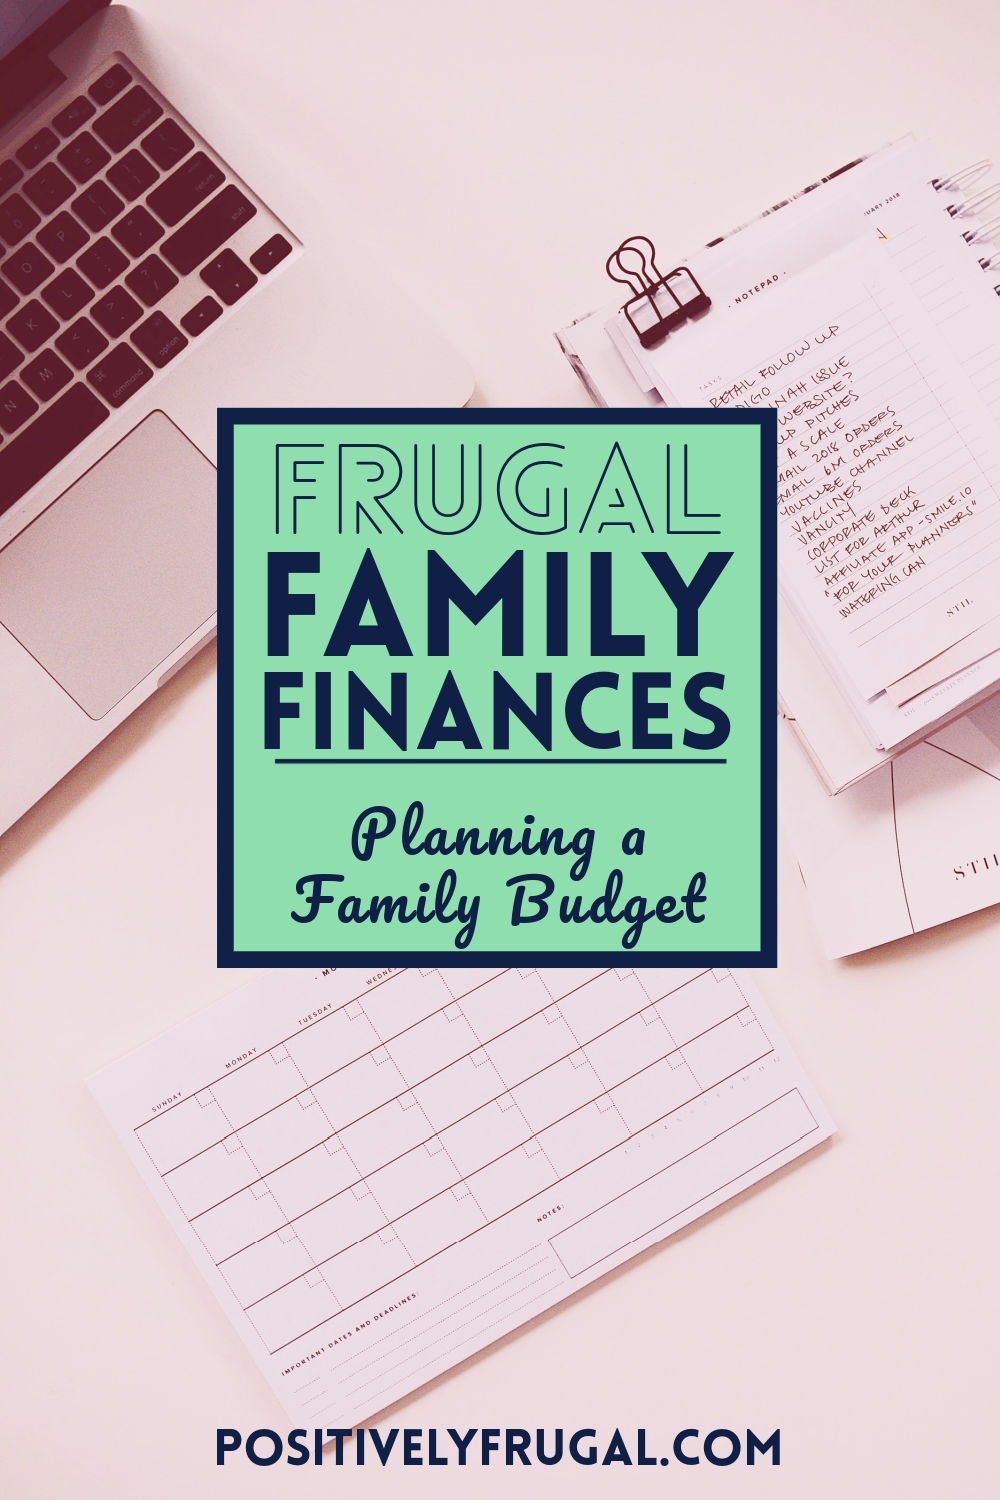 Frugal Family Finances How To Plan a Family Budget by PositivelyFrugal.com